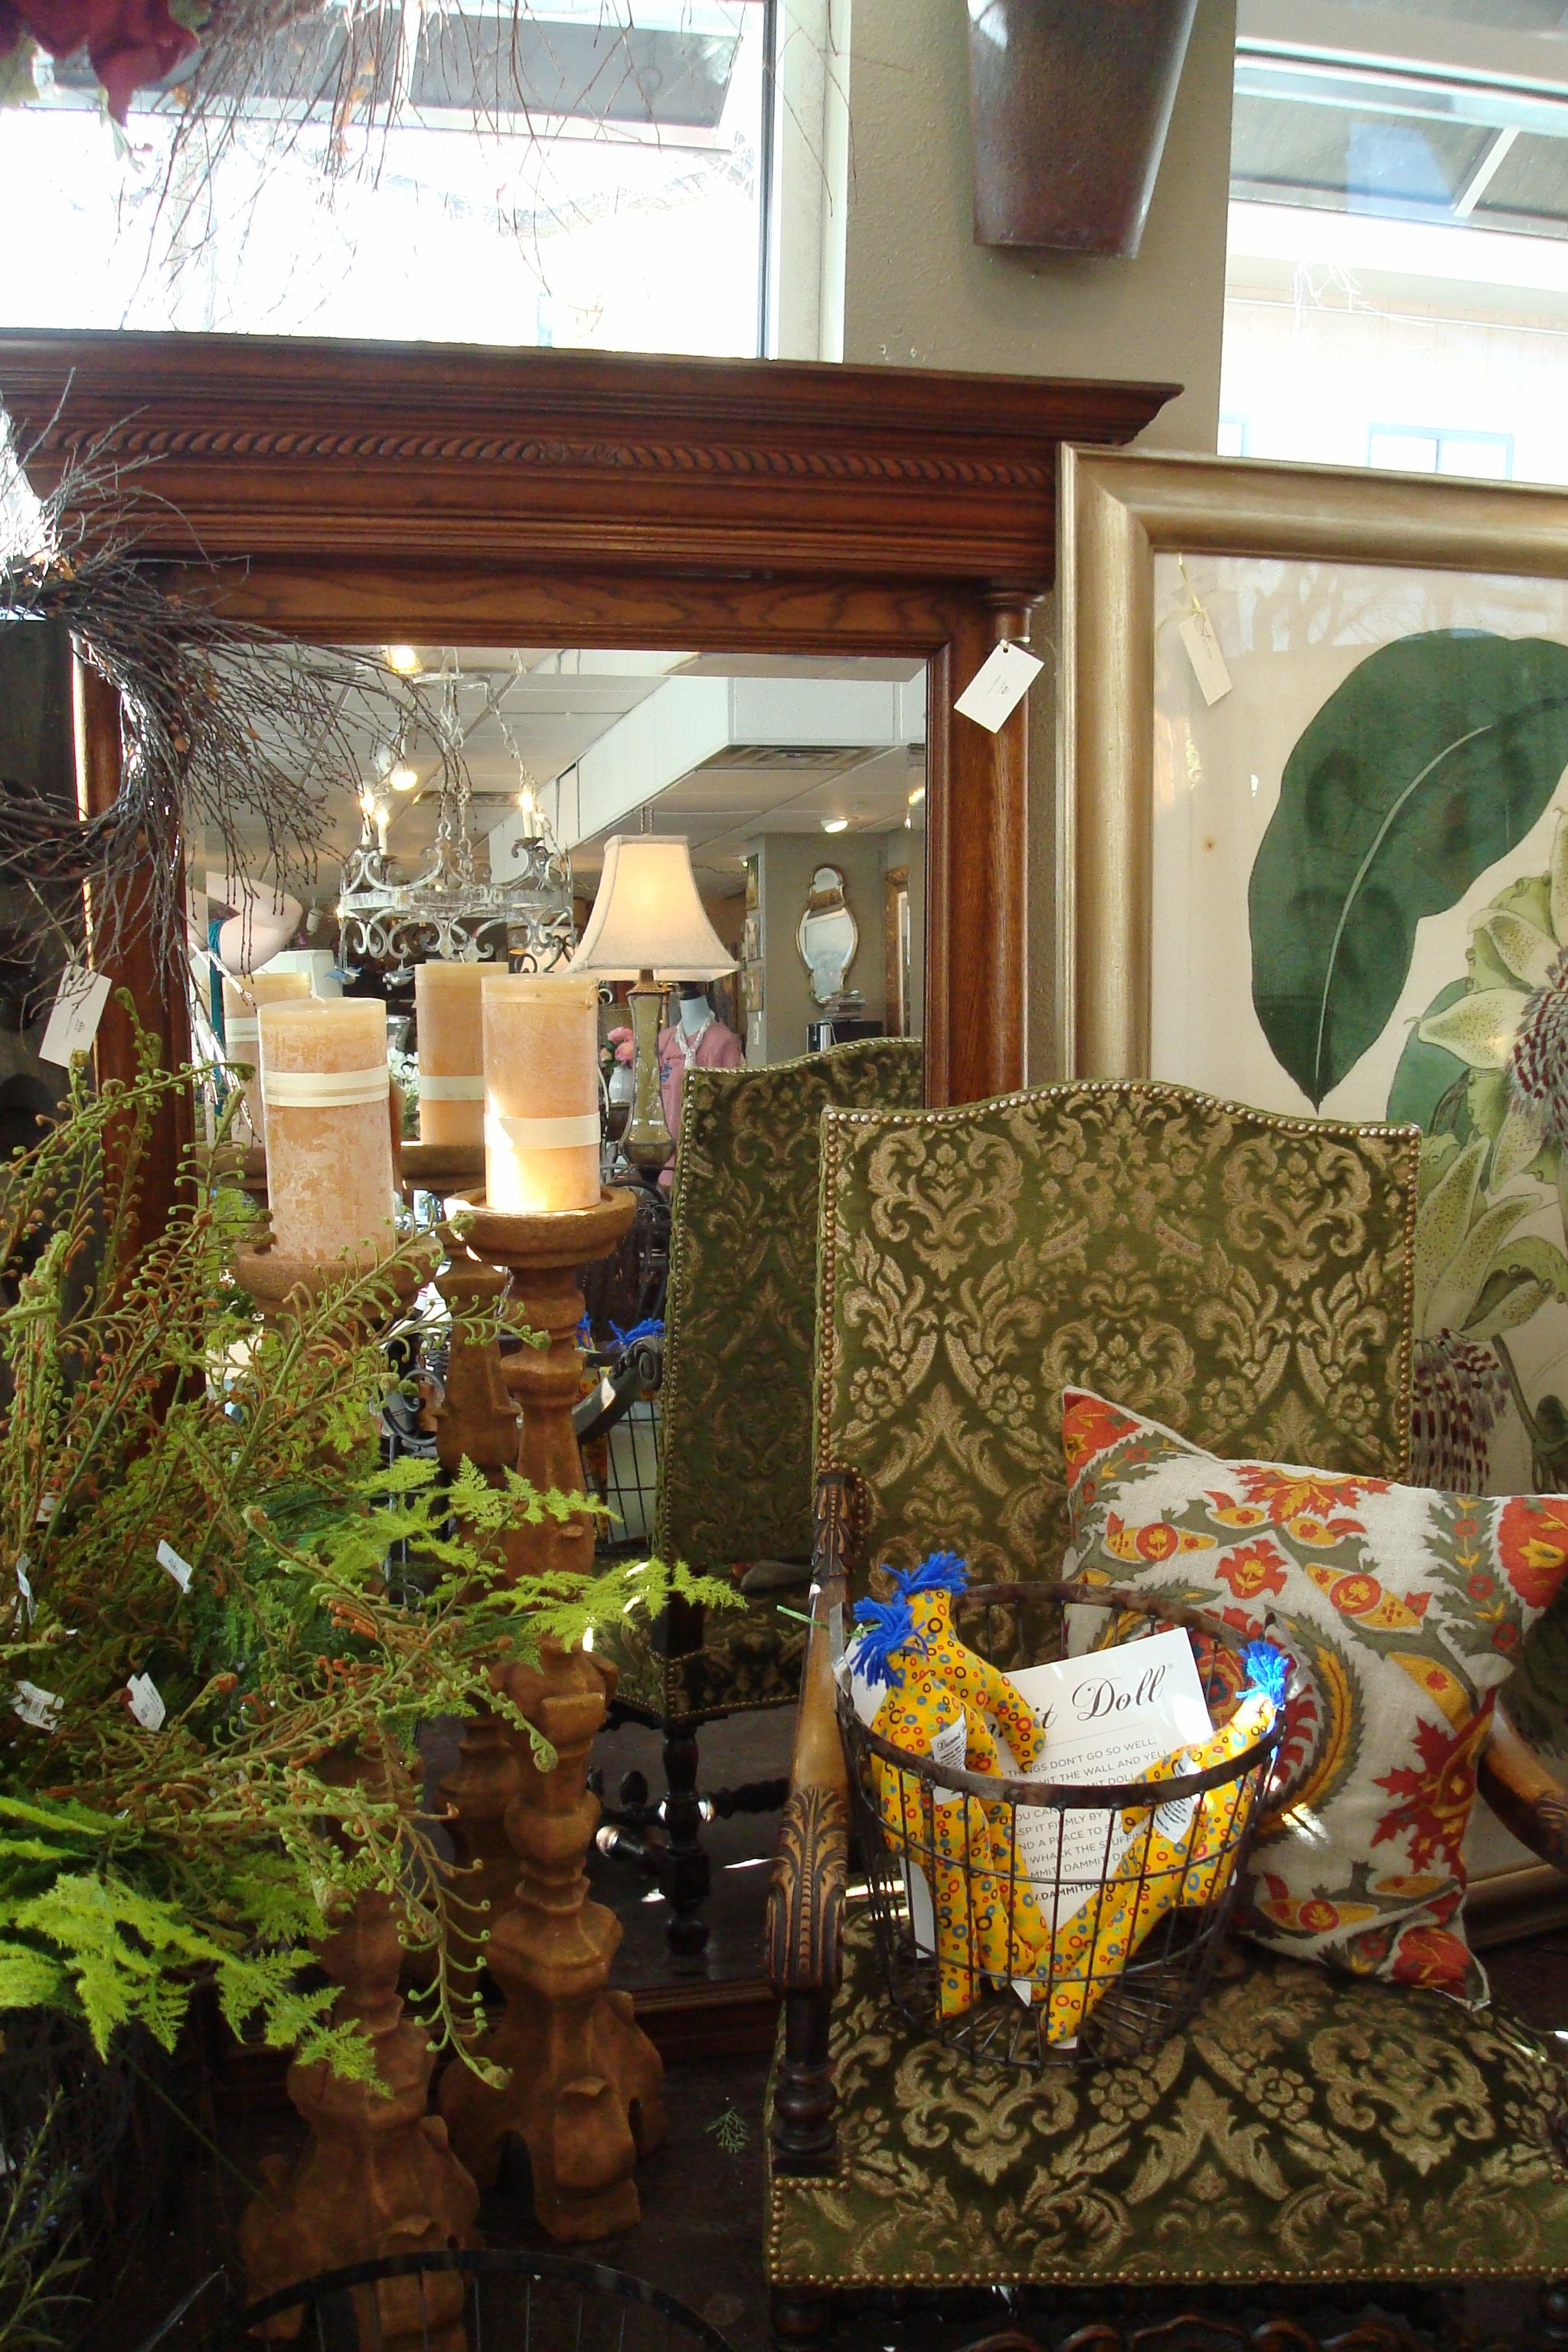 French antique chair with beautiful green cut velvet upholstery in front of Antique mirror